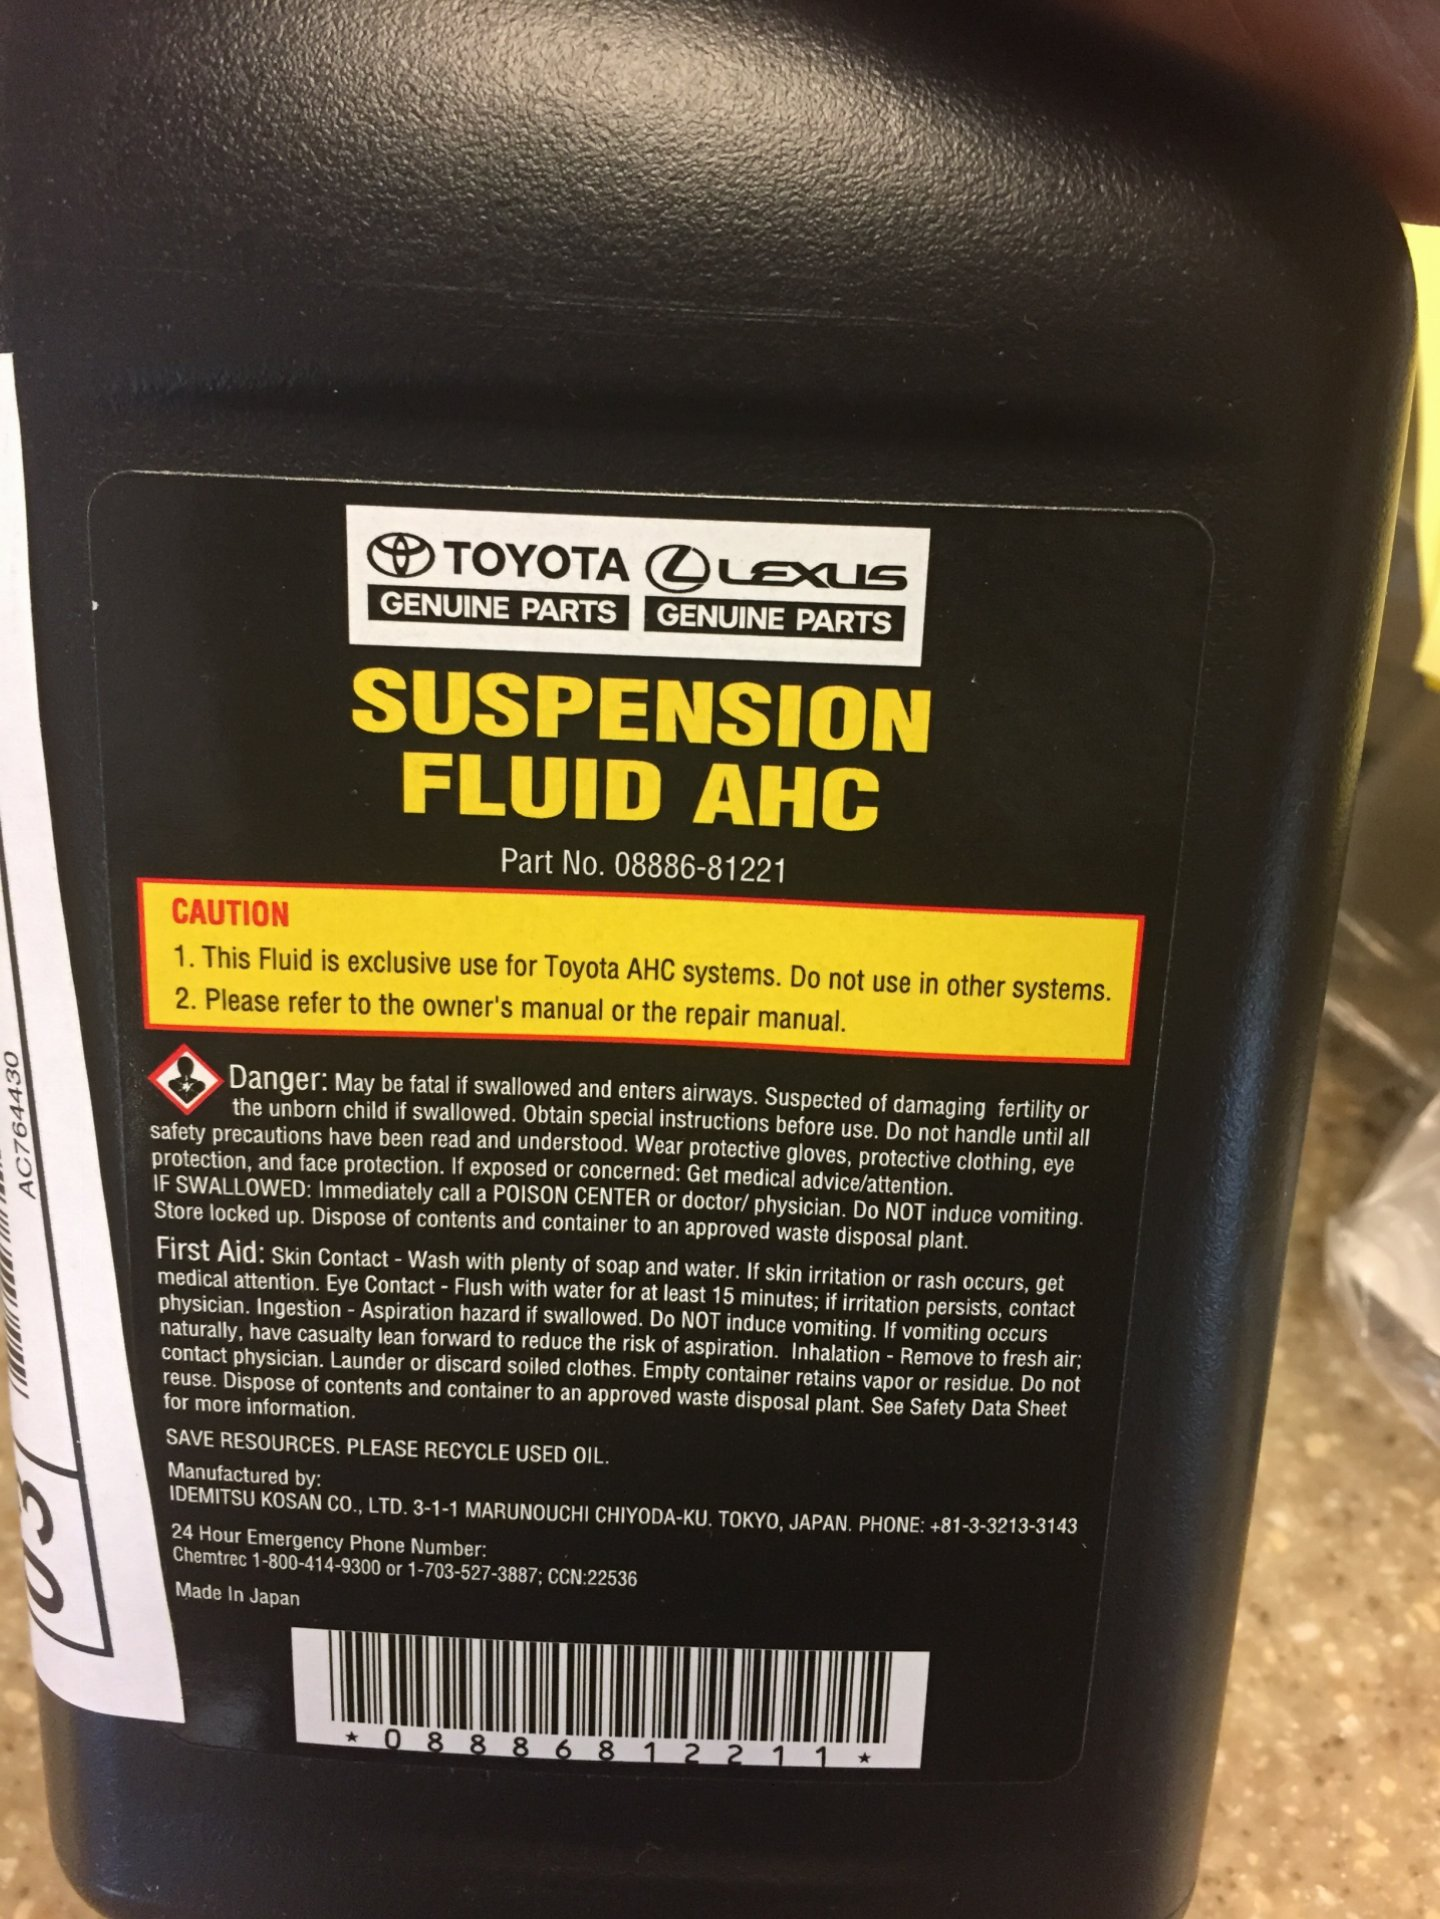 AHC fluid out of stock nationally, any ideas where else to